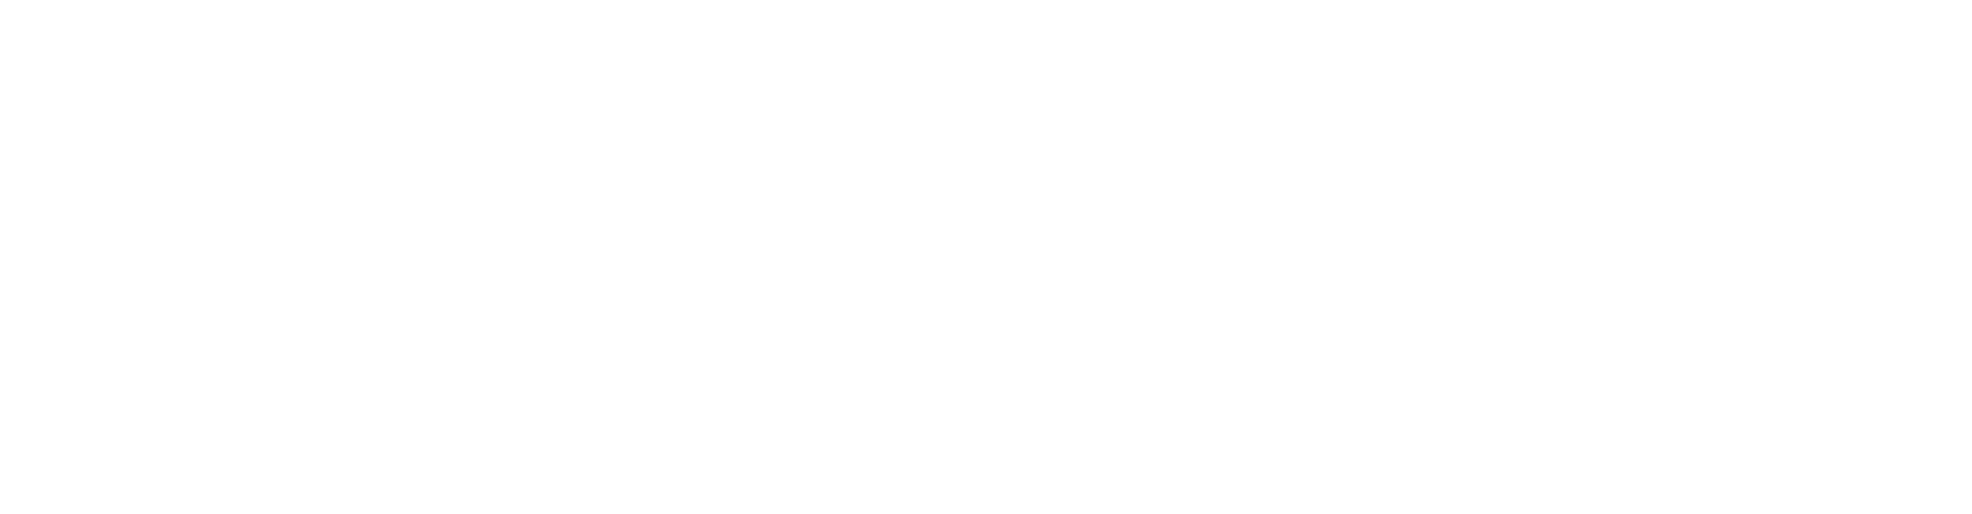 GoodFriend Self Storage